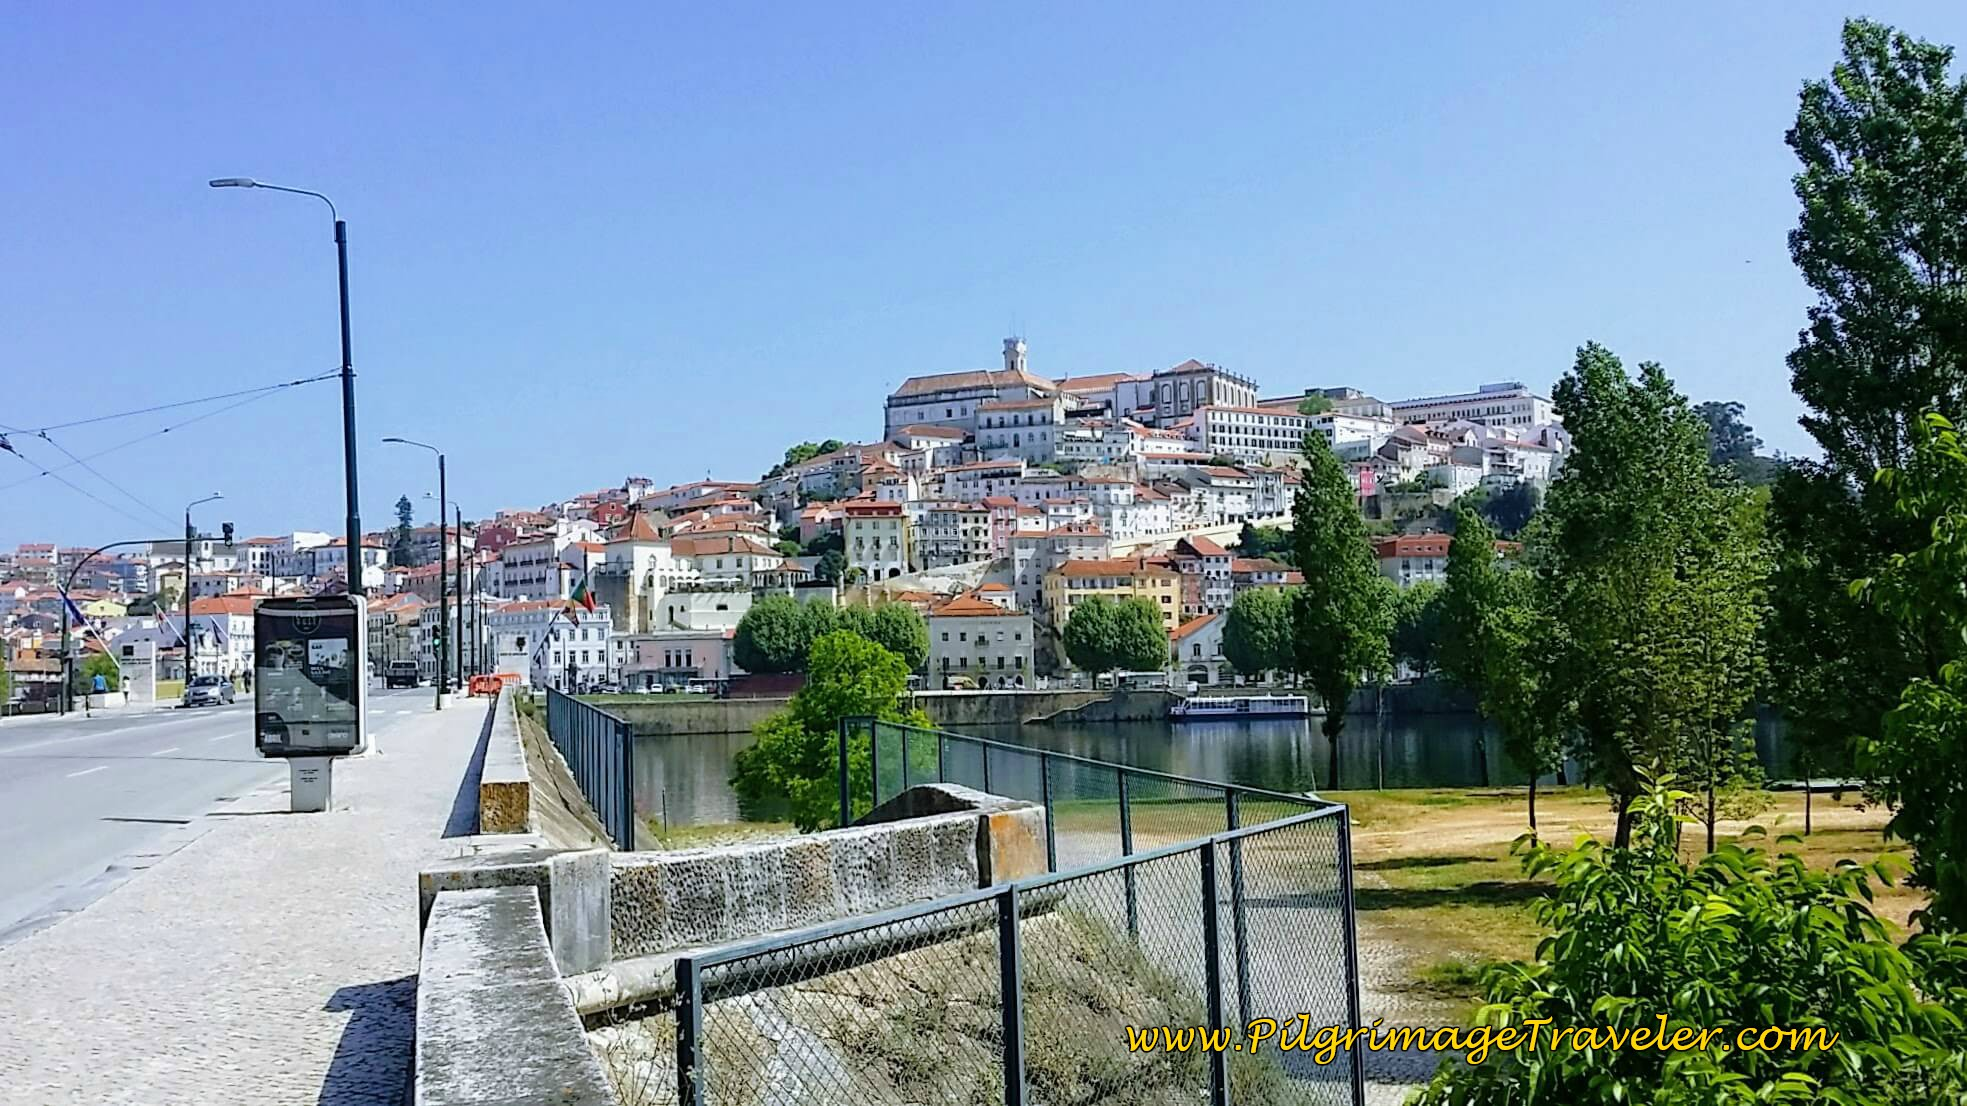 Crossing the Mondego River Into Coimbra